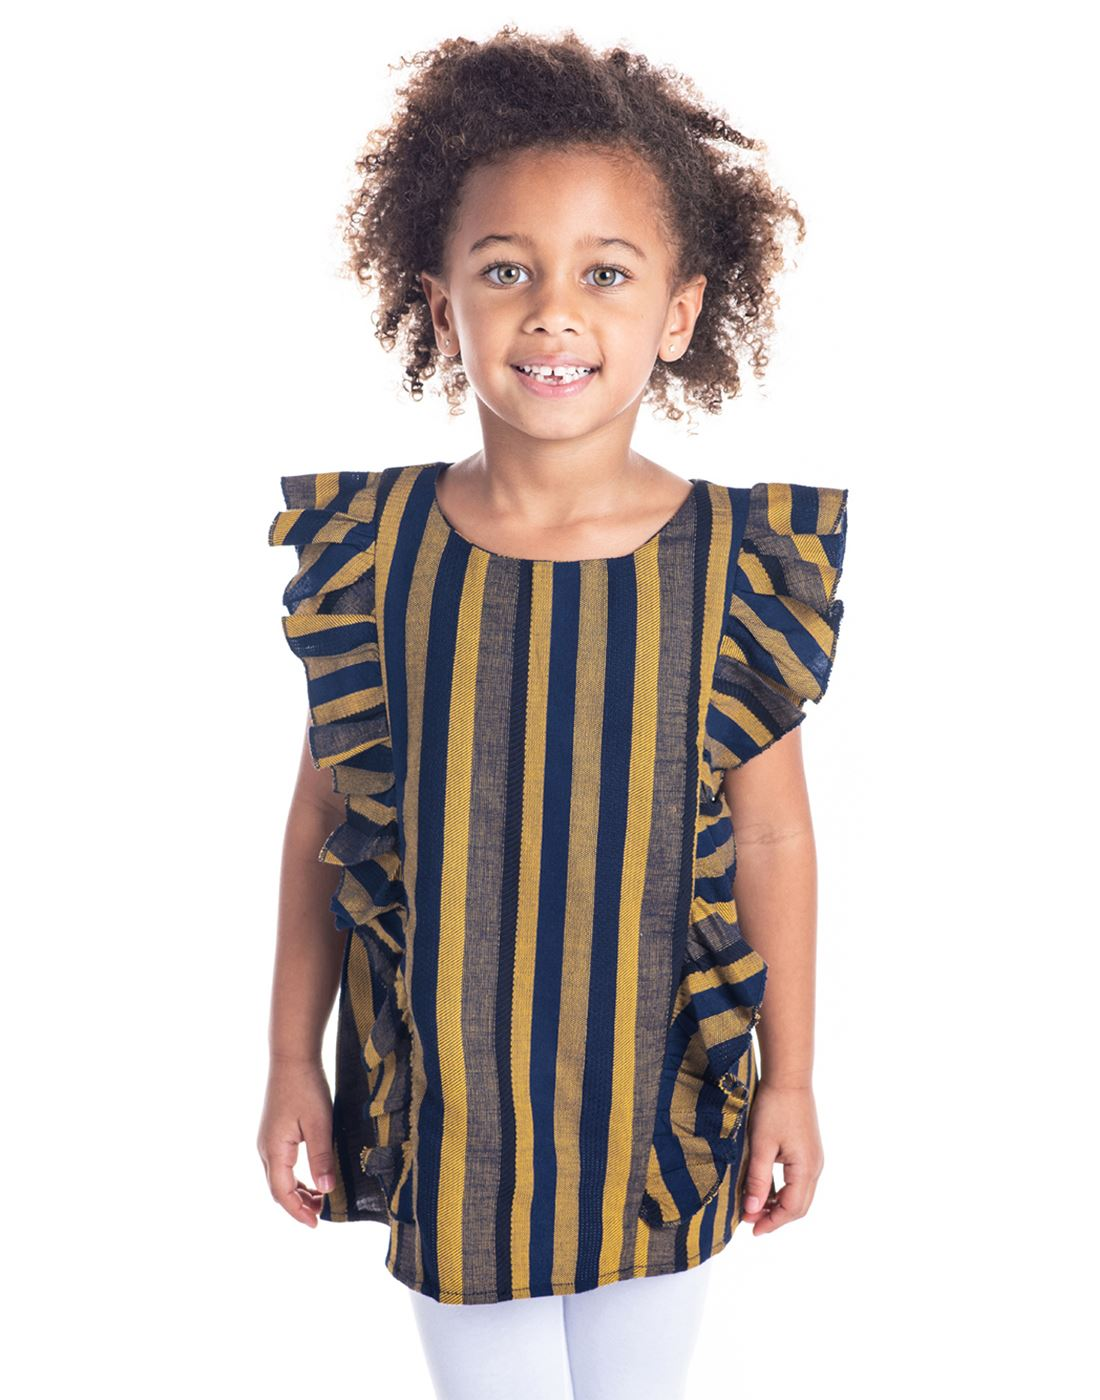 Cherry Crumble California Casual Wear Striped Girls Top